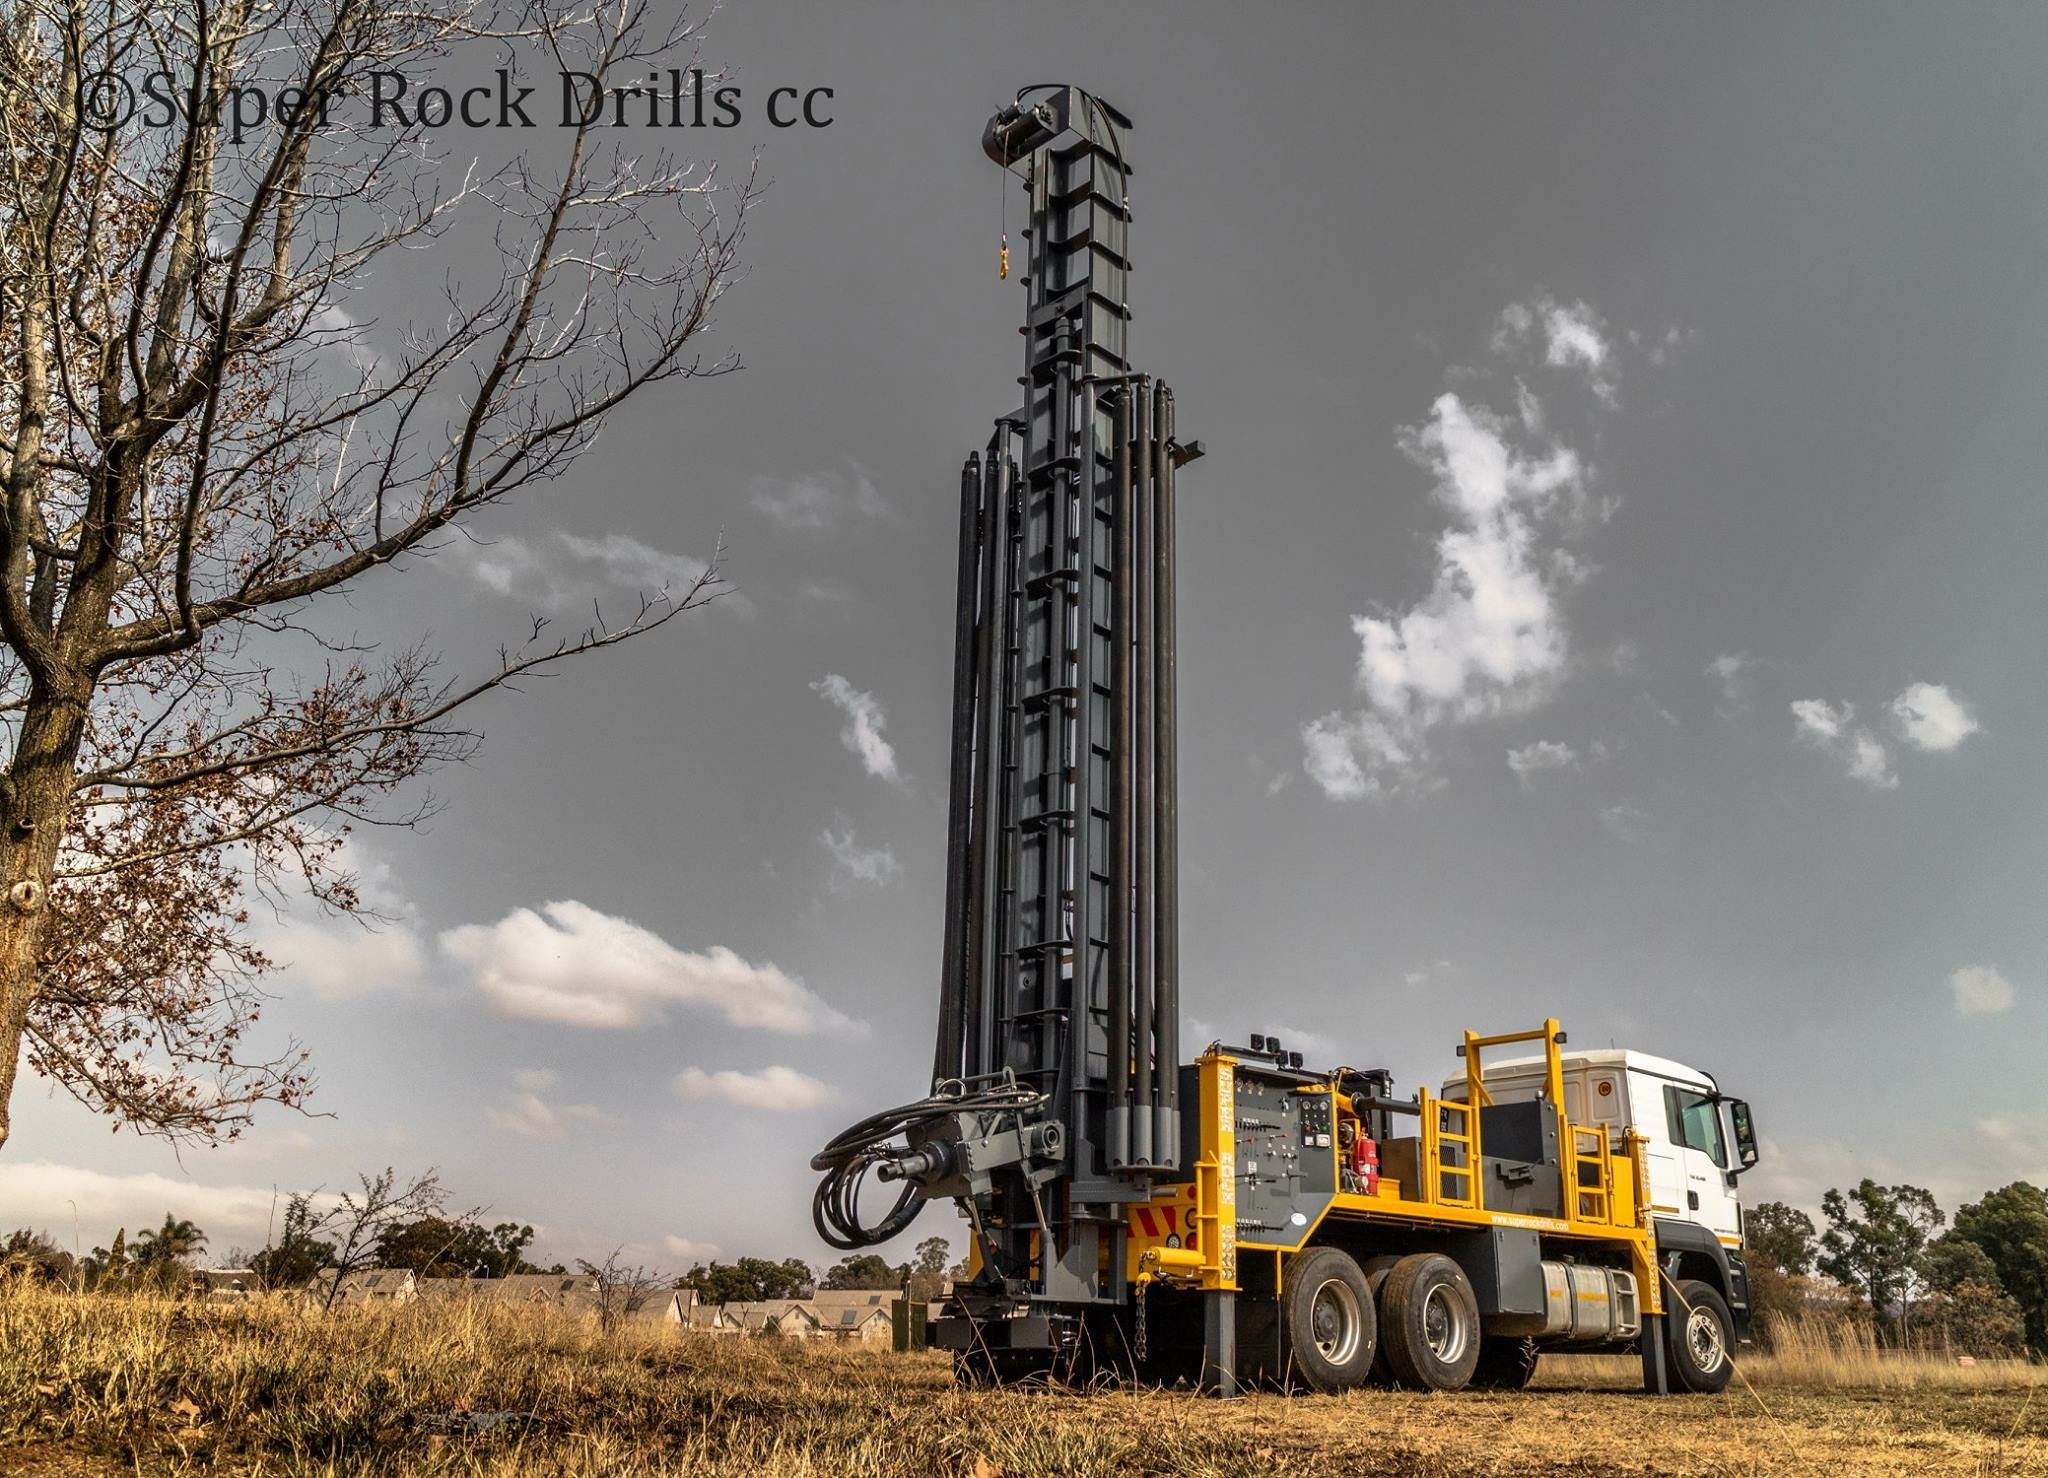 A Super Rock 5000 Waterwell Drill Rig Manufactured By Super Rock Drills South Africa Water Well Drilling Rigs Drilling Rig Water Well Drilling